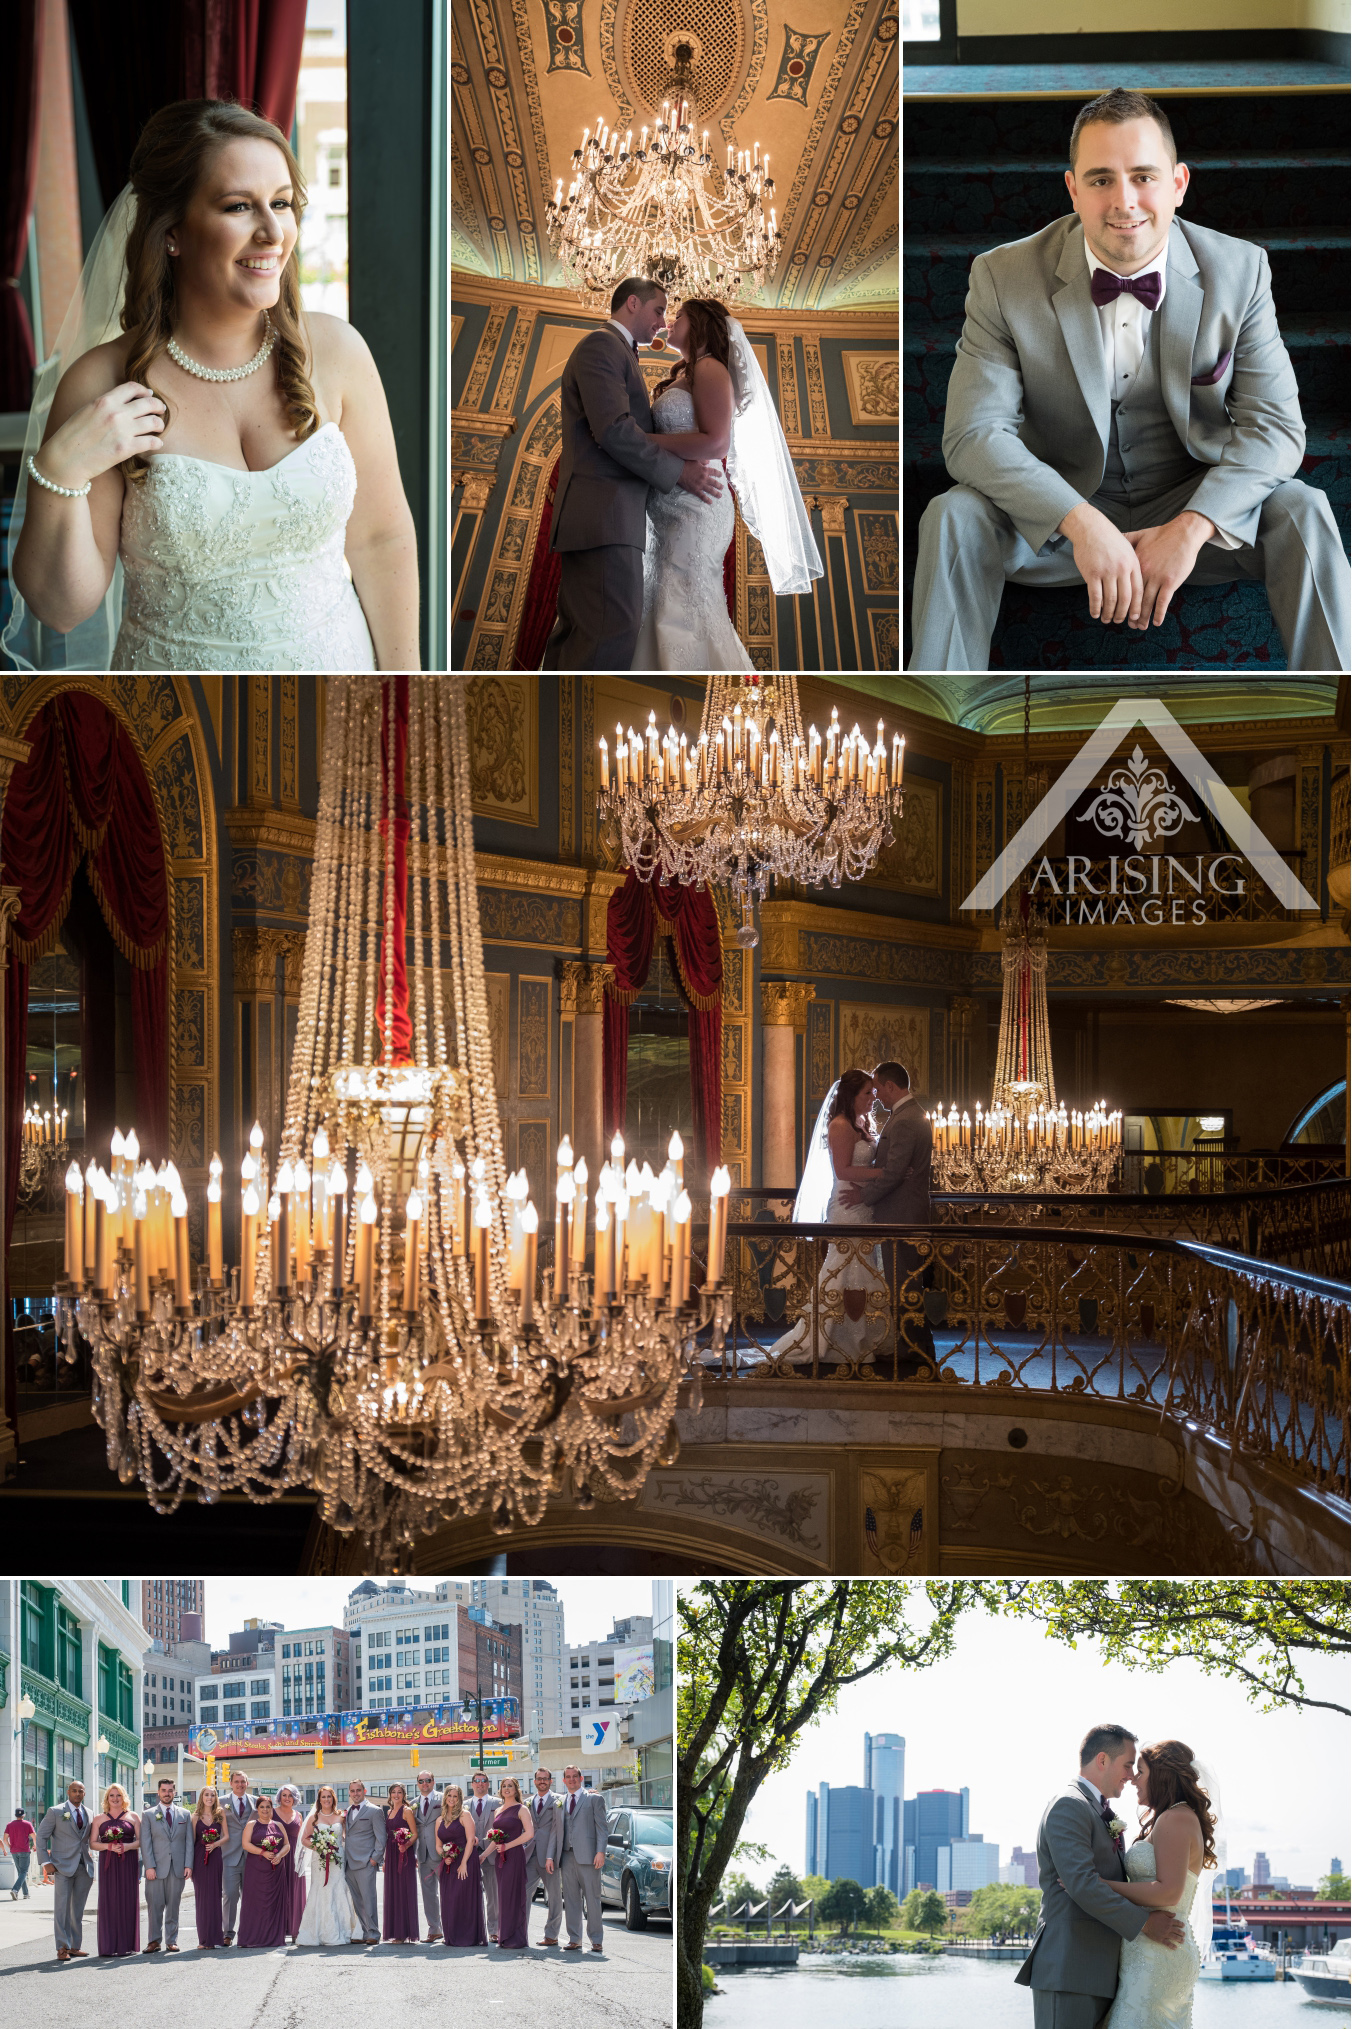 Detroit Opera House Wedding Photography